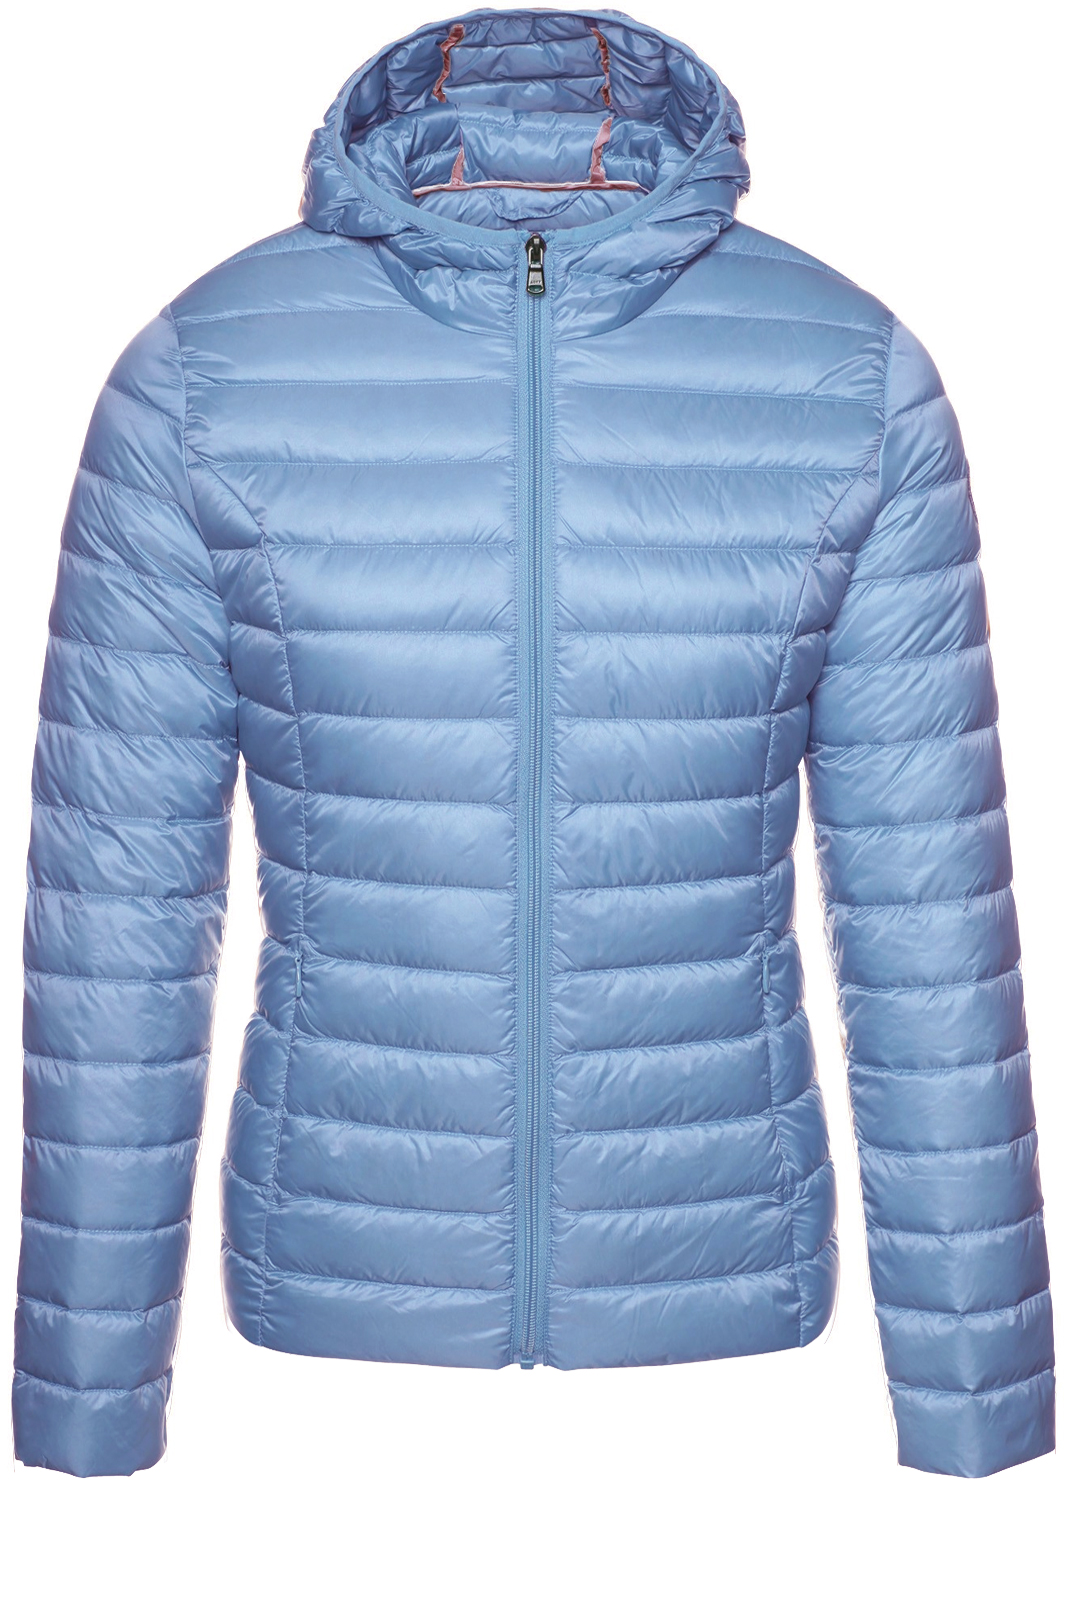 Blouson  Just over the top CLOE 129 BLEU HORIZON